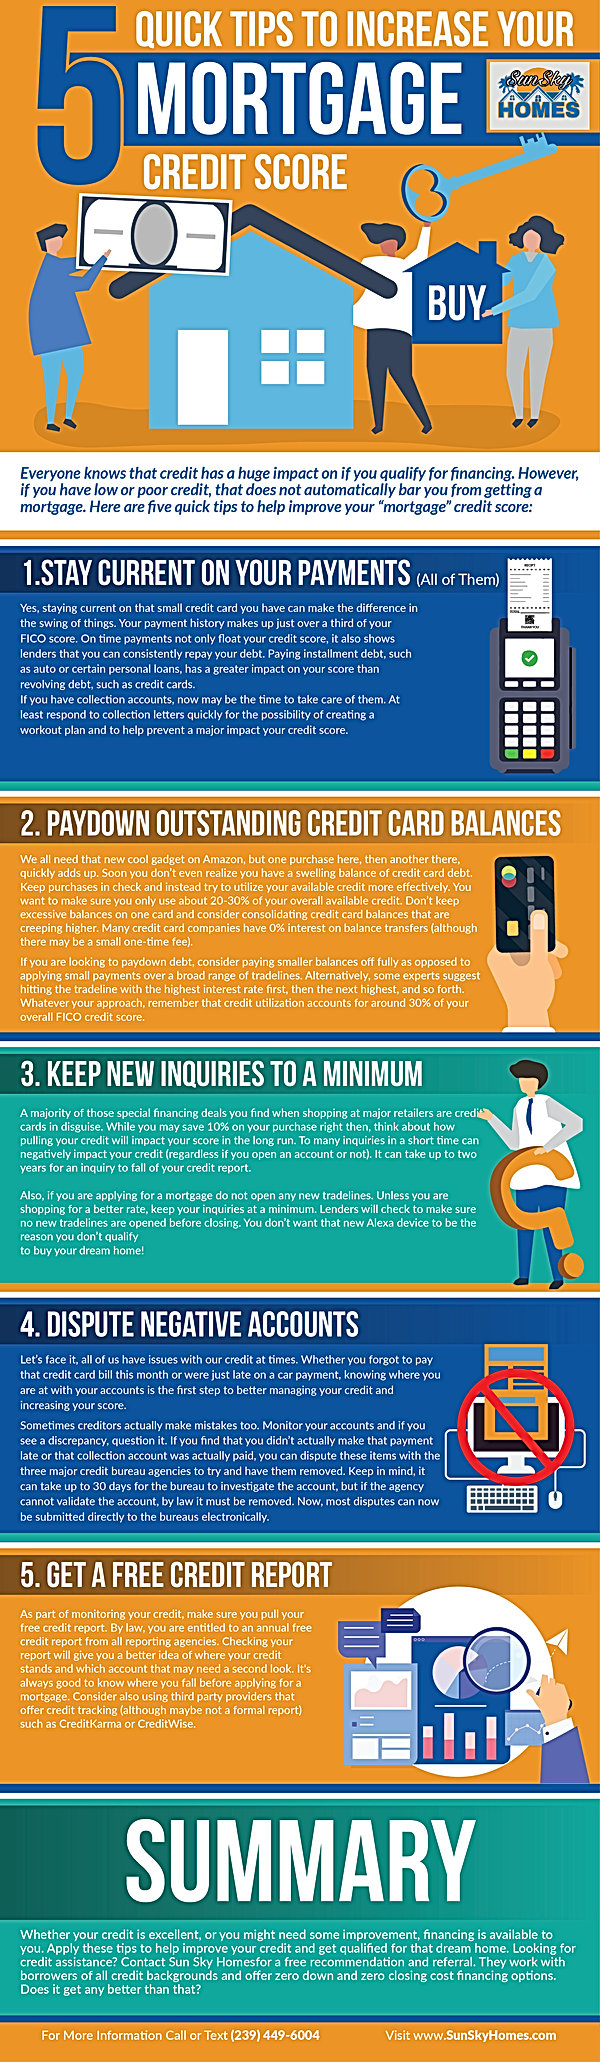 5 Mortgage Tips.jpg